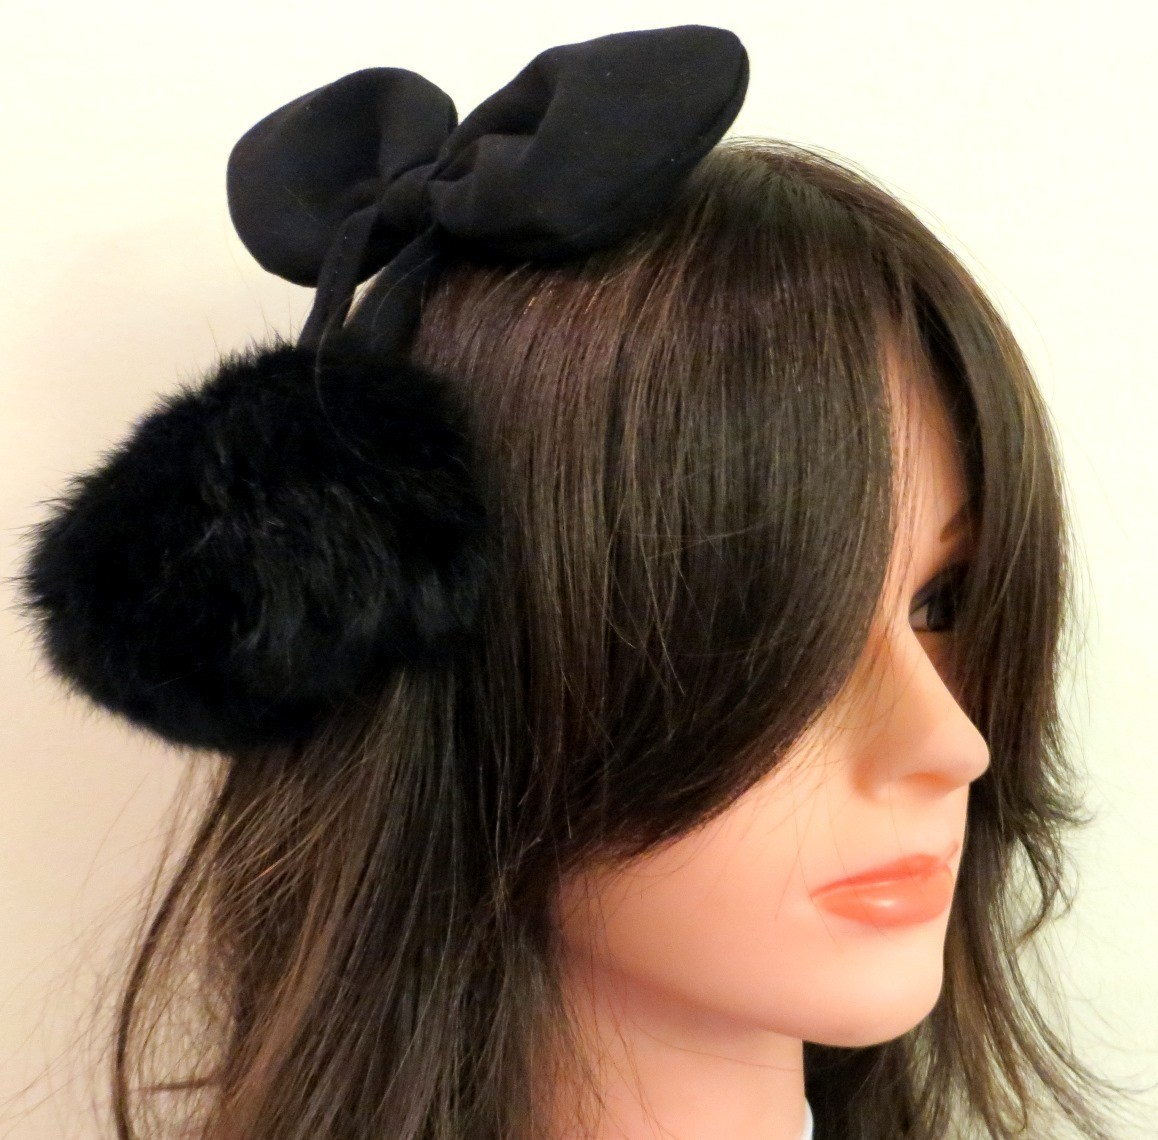 Black bow headband with dangling pom poms